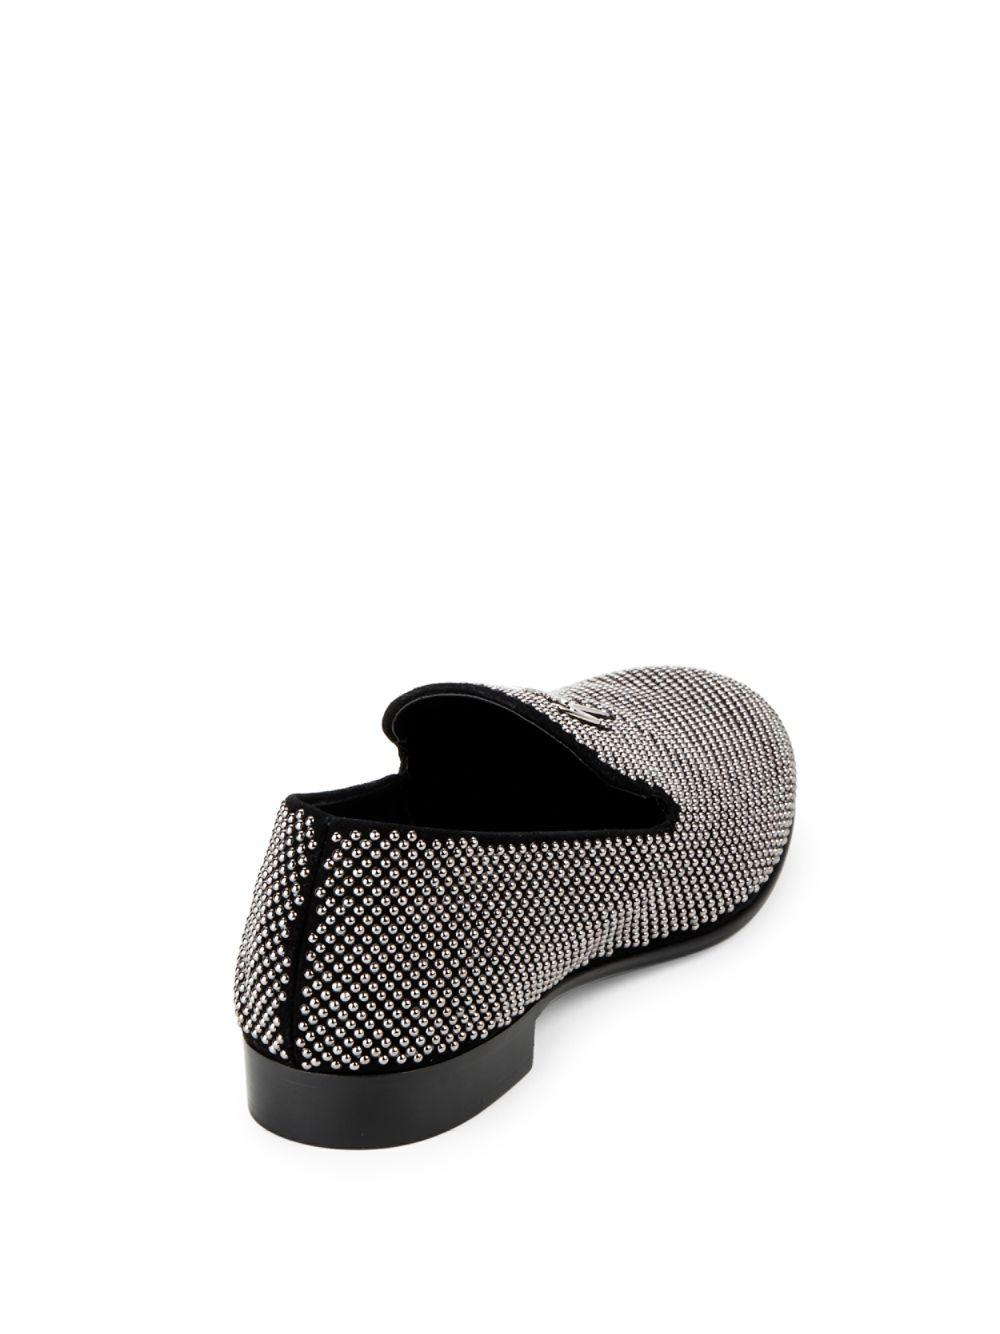 2ef24d898 Lyst - Giuseppe Zanotti Studded Leather Smoking Slippers in Black